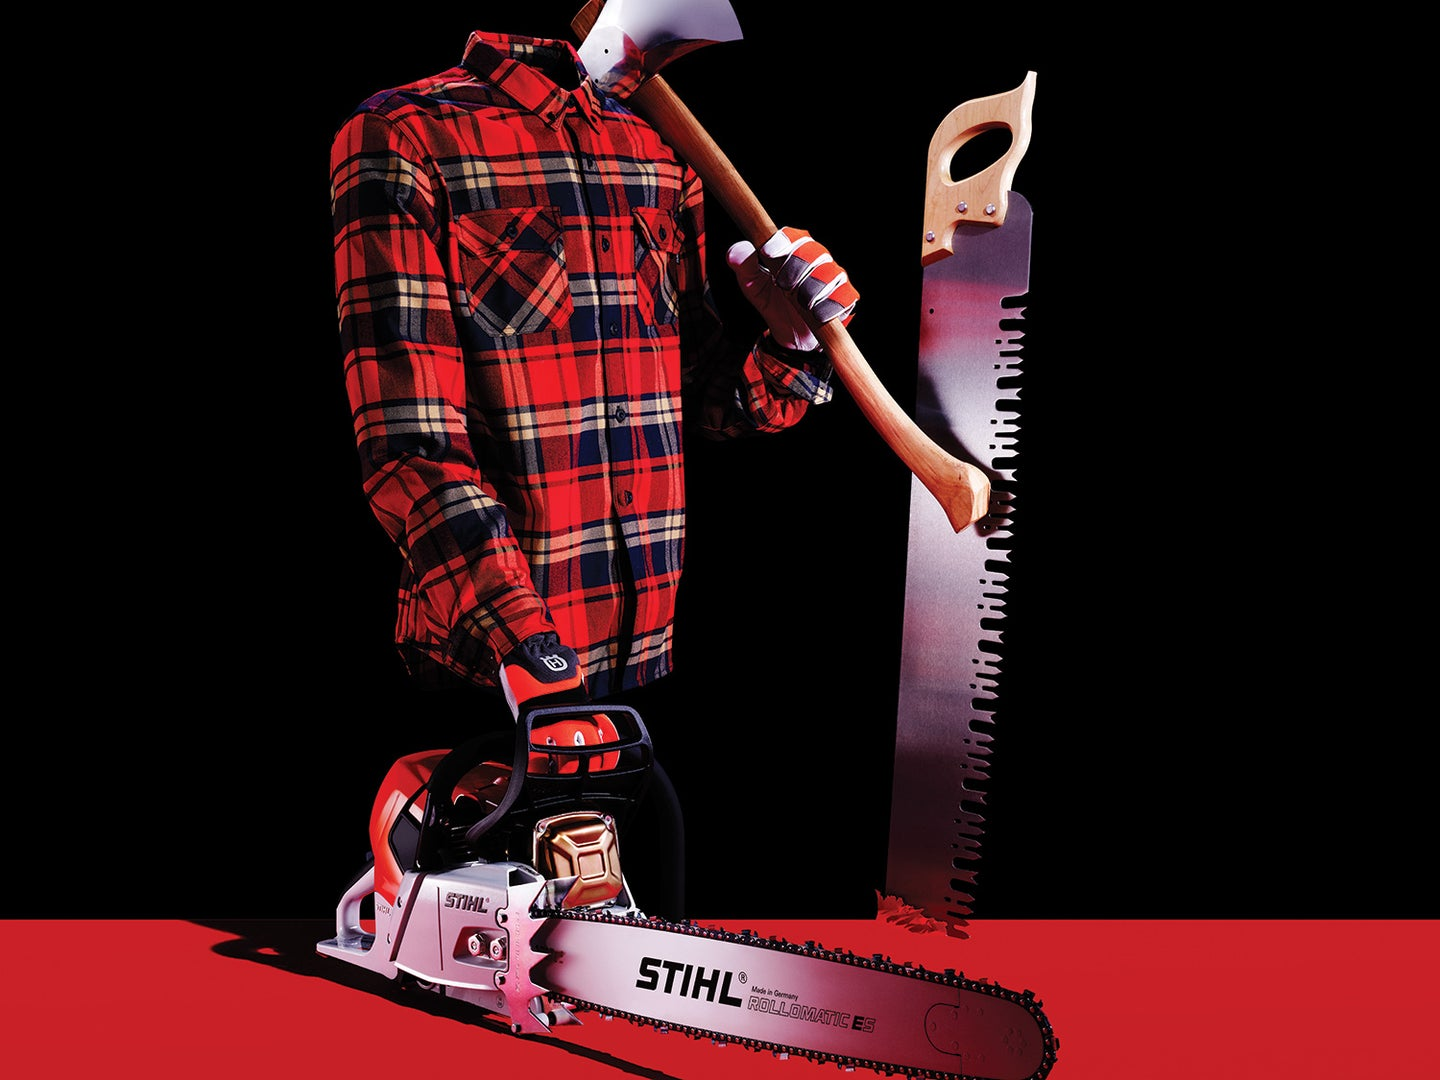 Here's the gear you need to be a backyard lumberjack